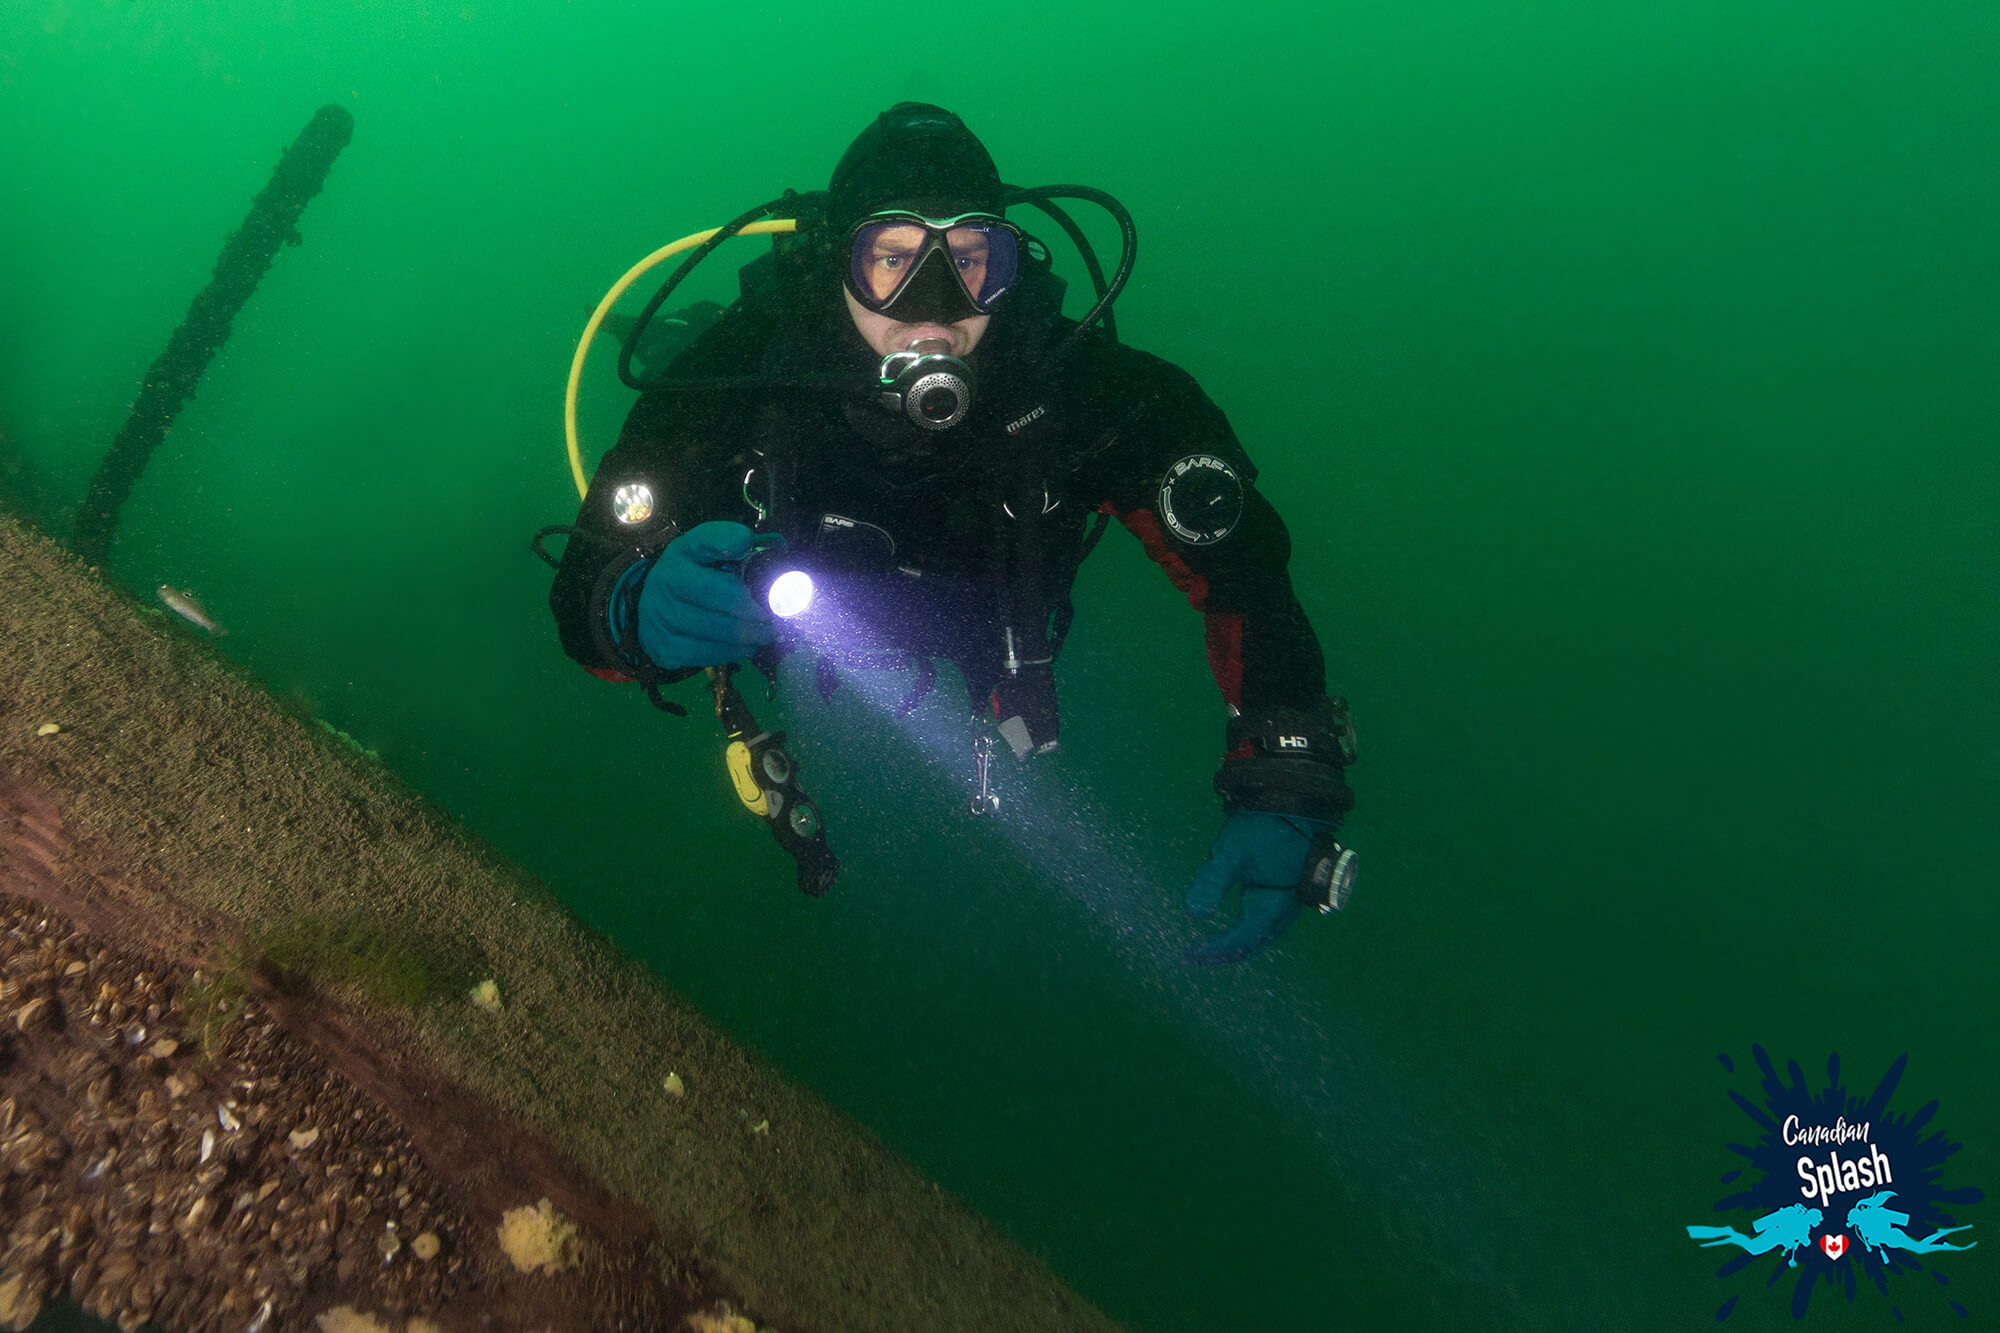 Joey Exploring The Robert Gaskin Ship, Ontario Scuba Diving, Canada